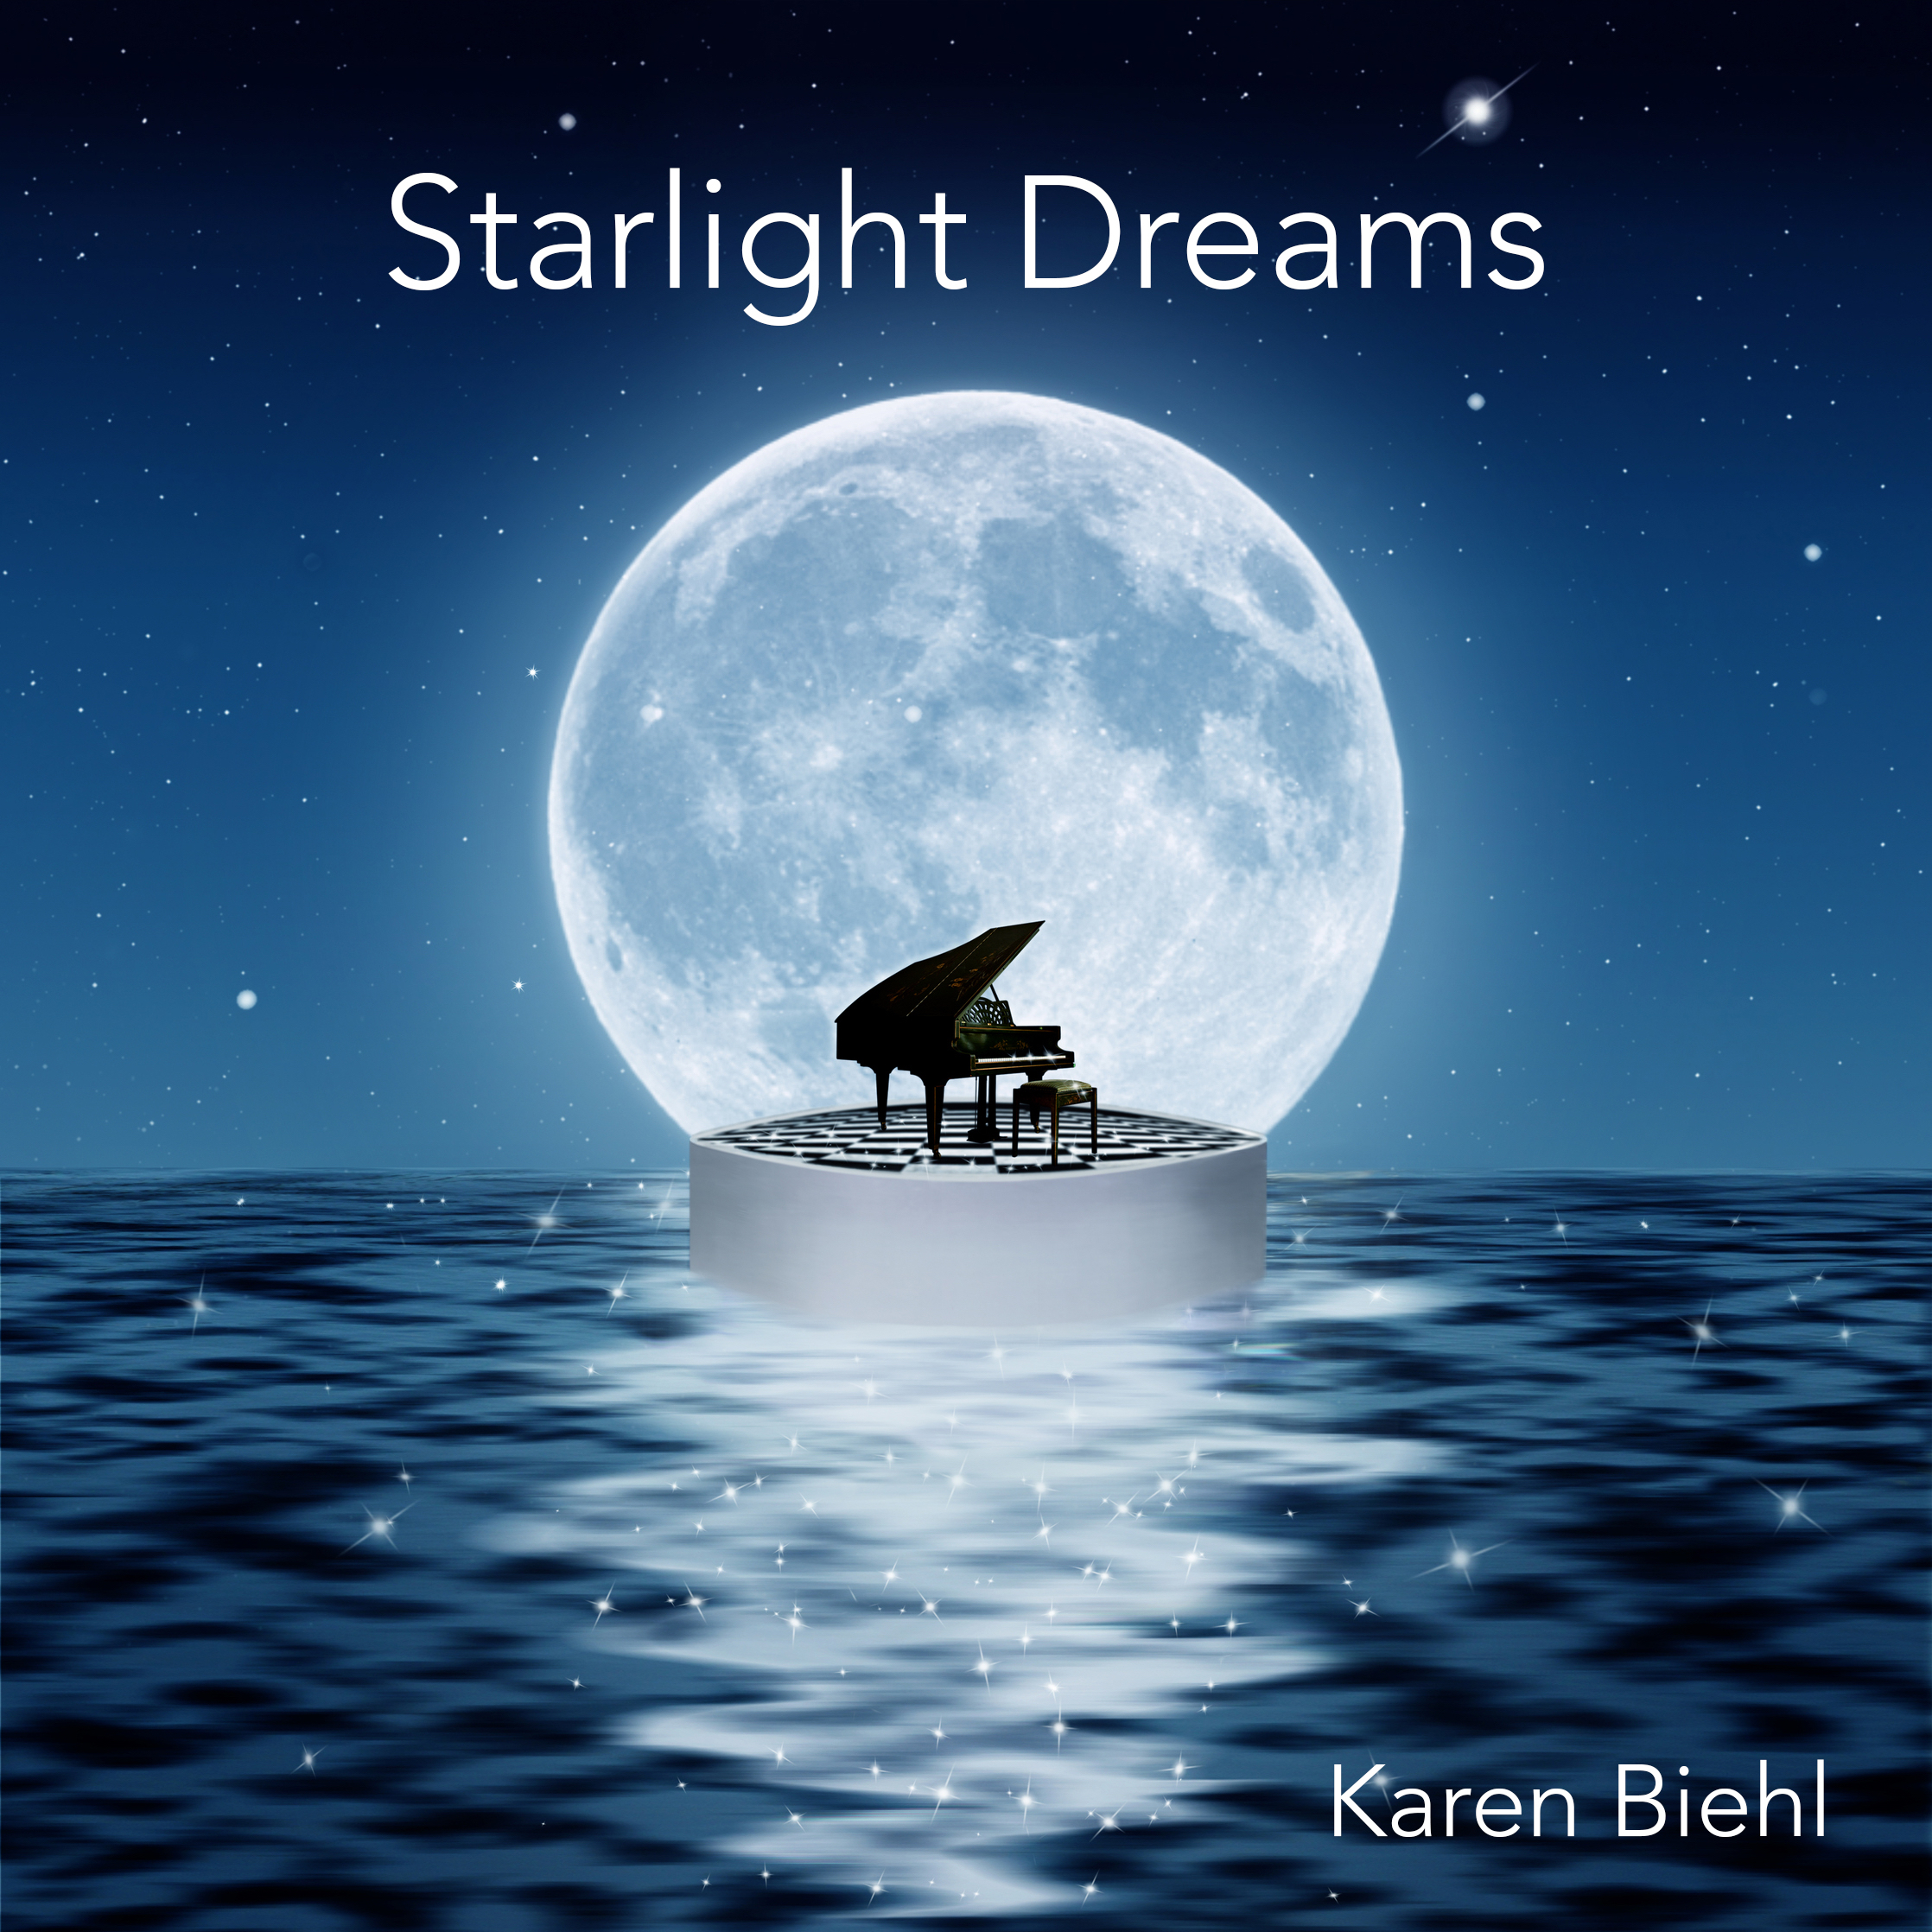 Karen Biehl - Starlight Dreams Cover